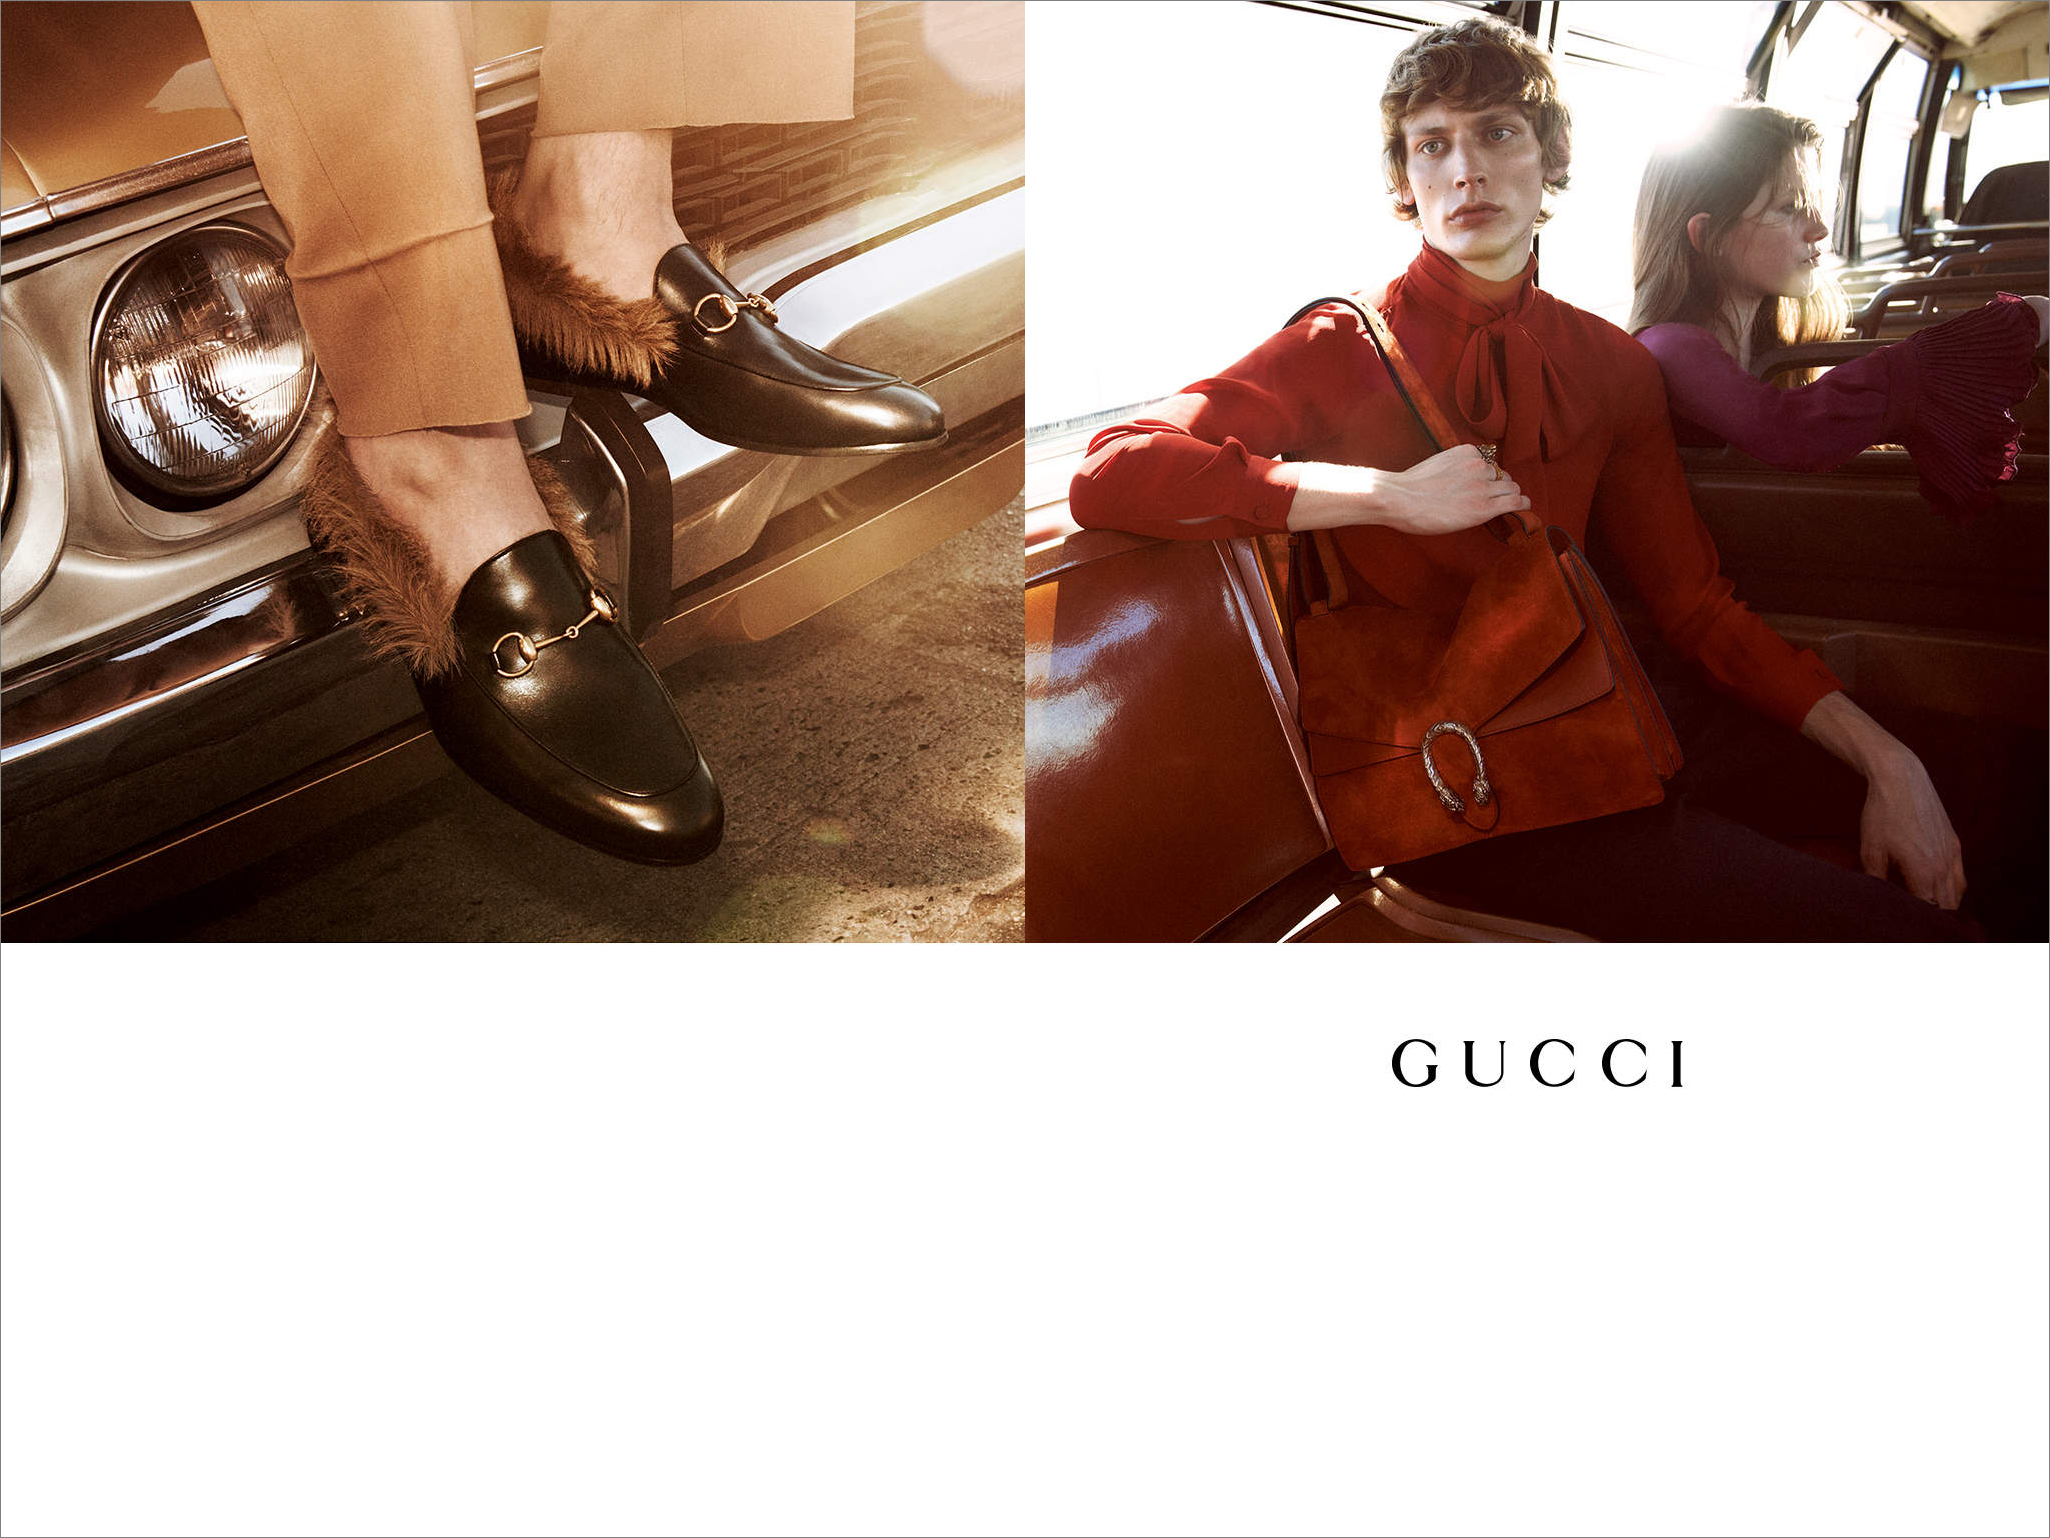 gucci-ad-advertisement-campaign-fall-2015-the-impression-01[1]